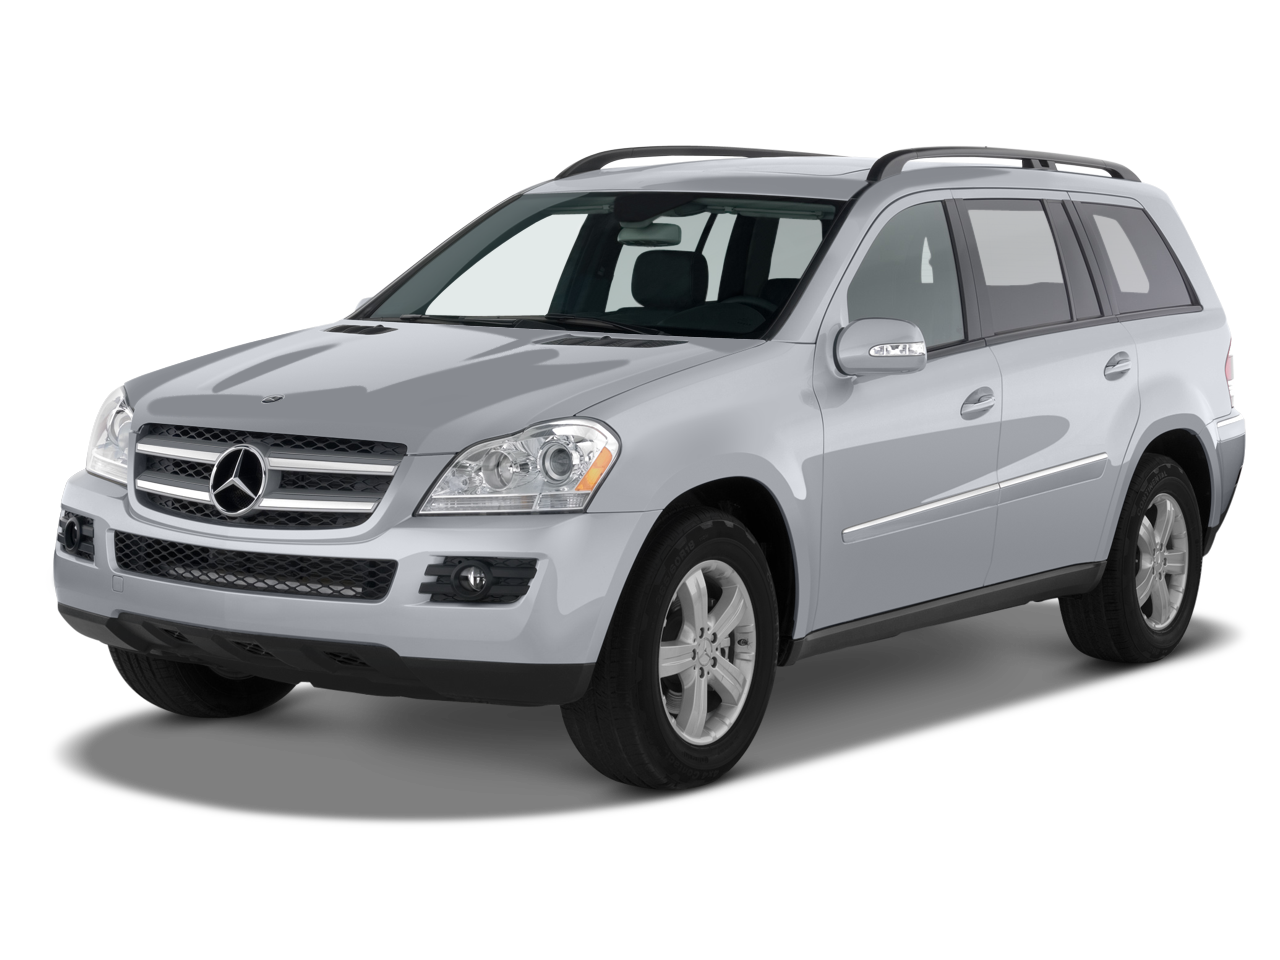 2009 mercedes benz gl550 4matic mercedes benz luxury suv for Mercedes benz suv 2009 price